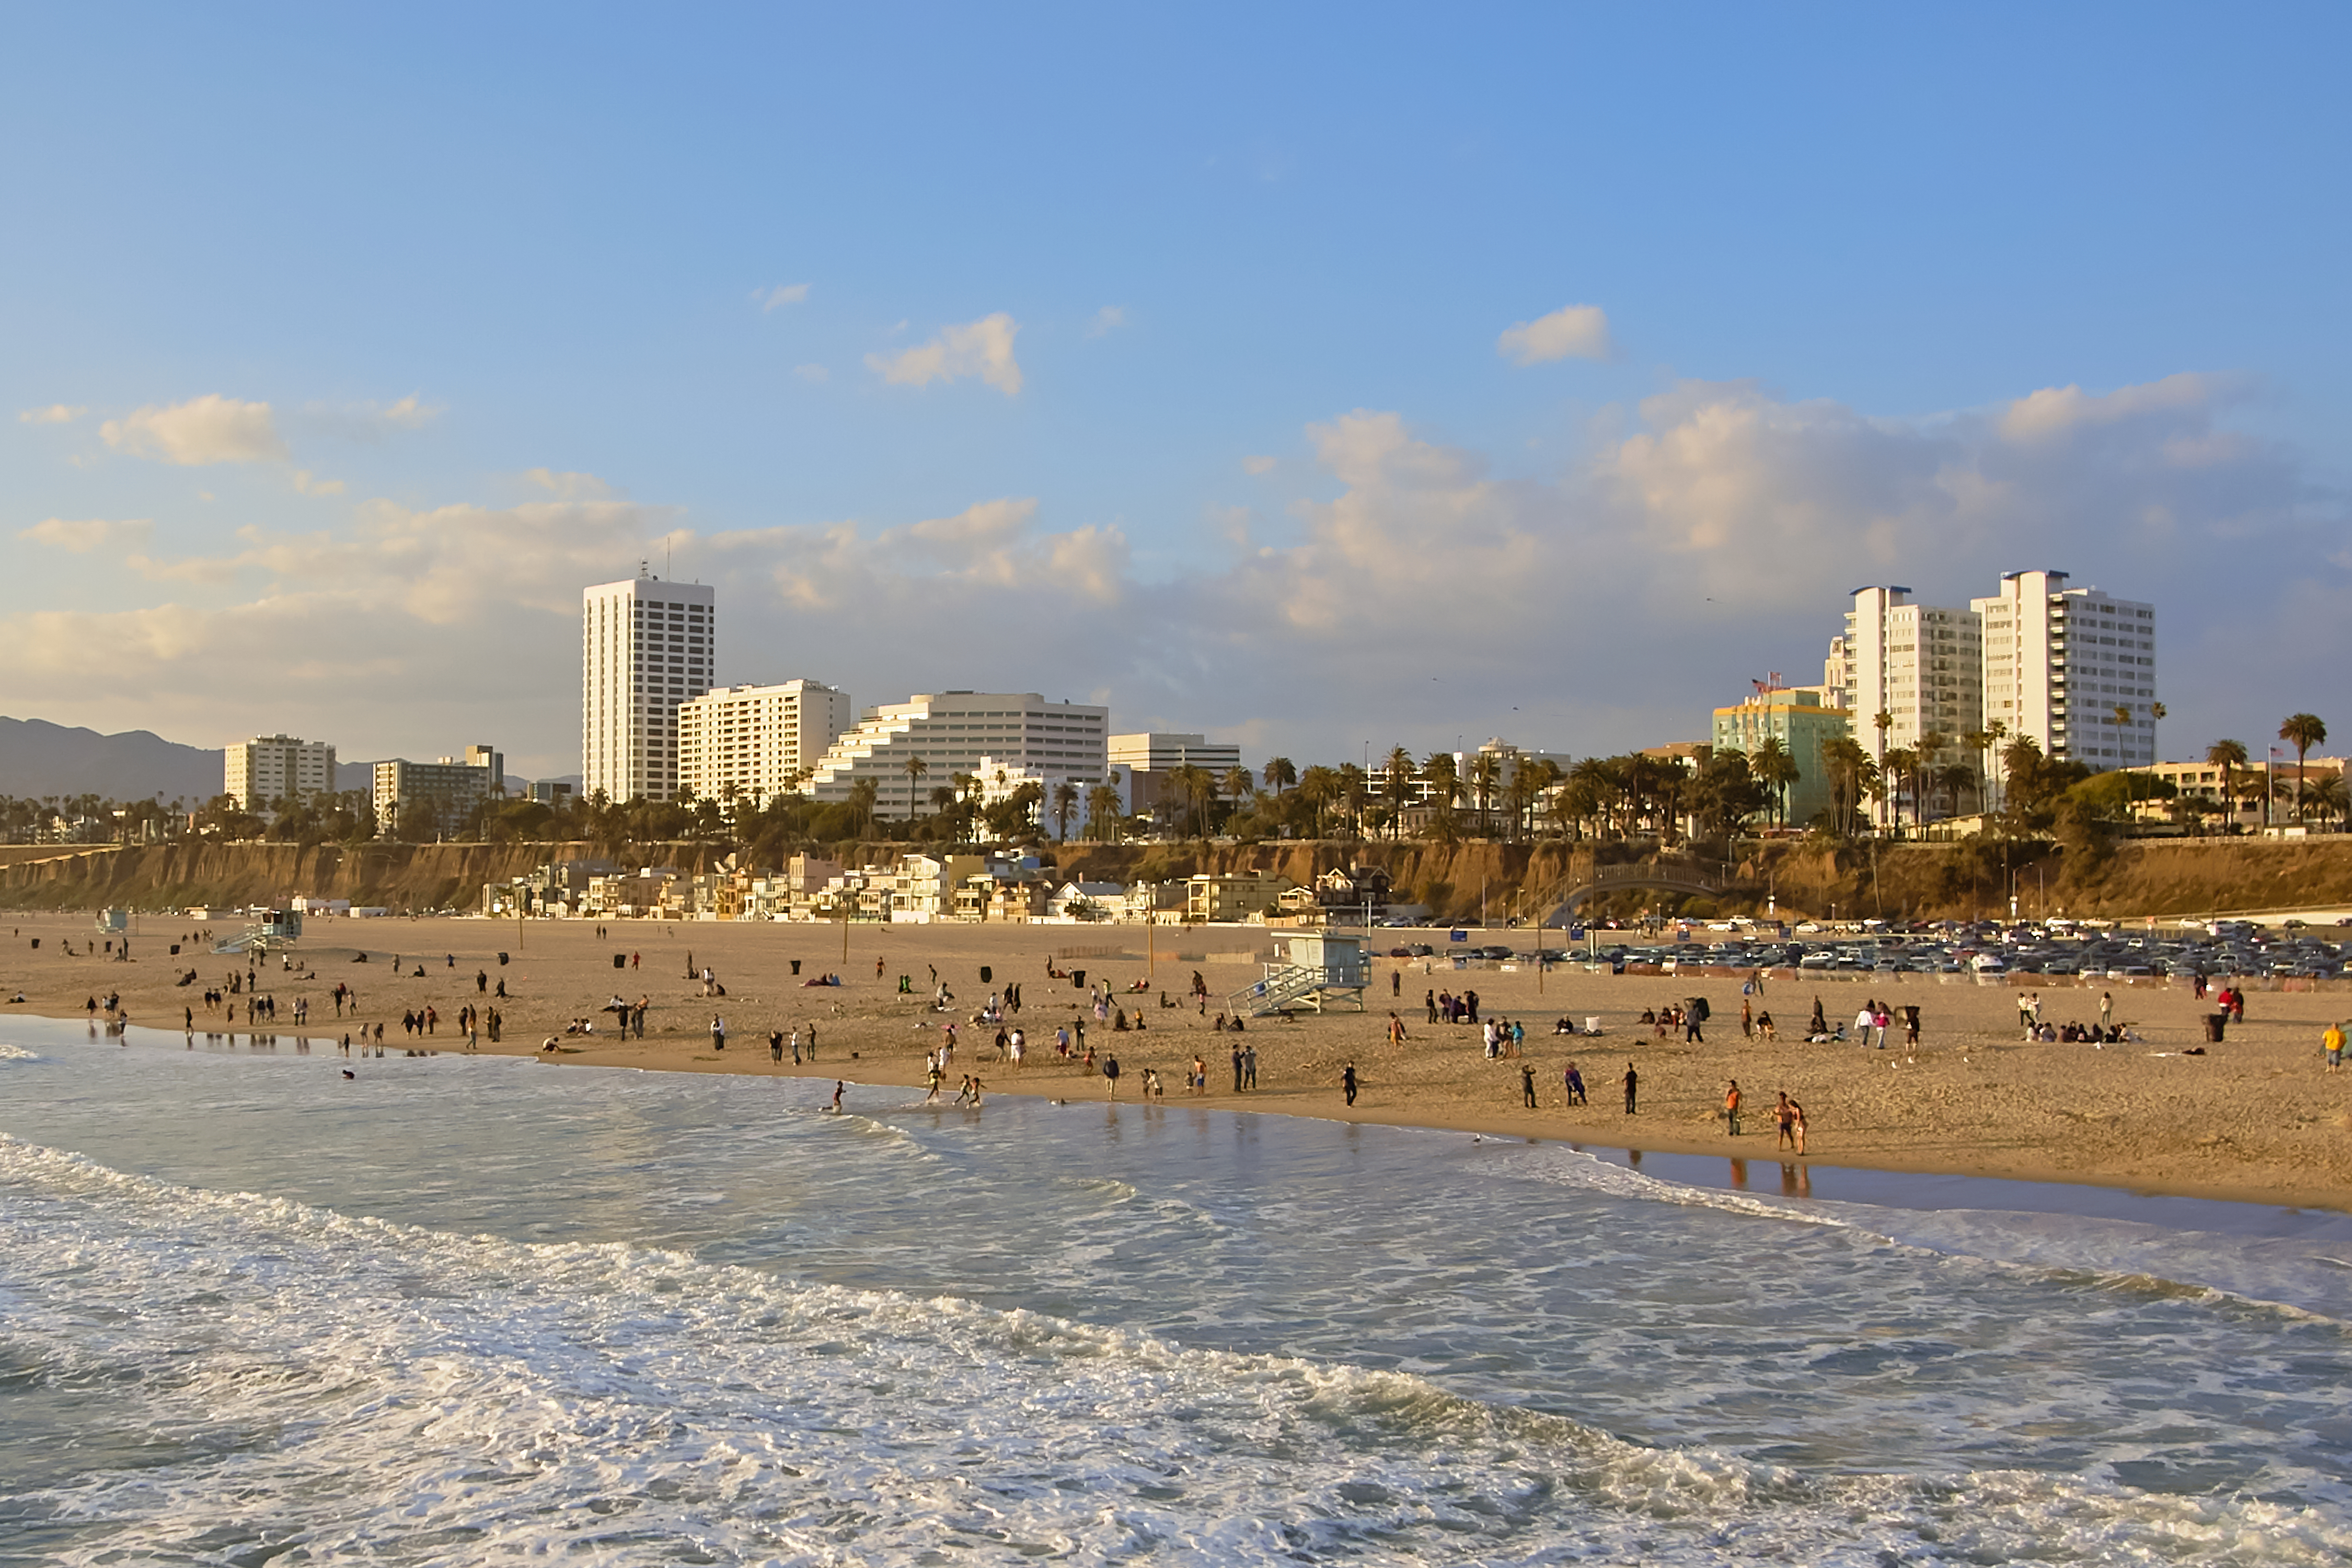 View of Santa Monica